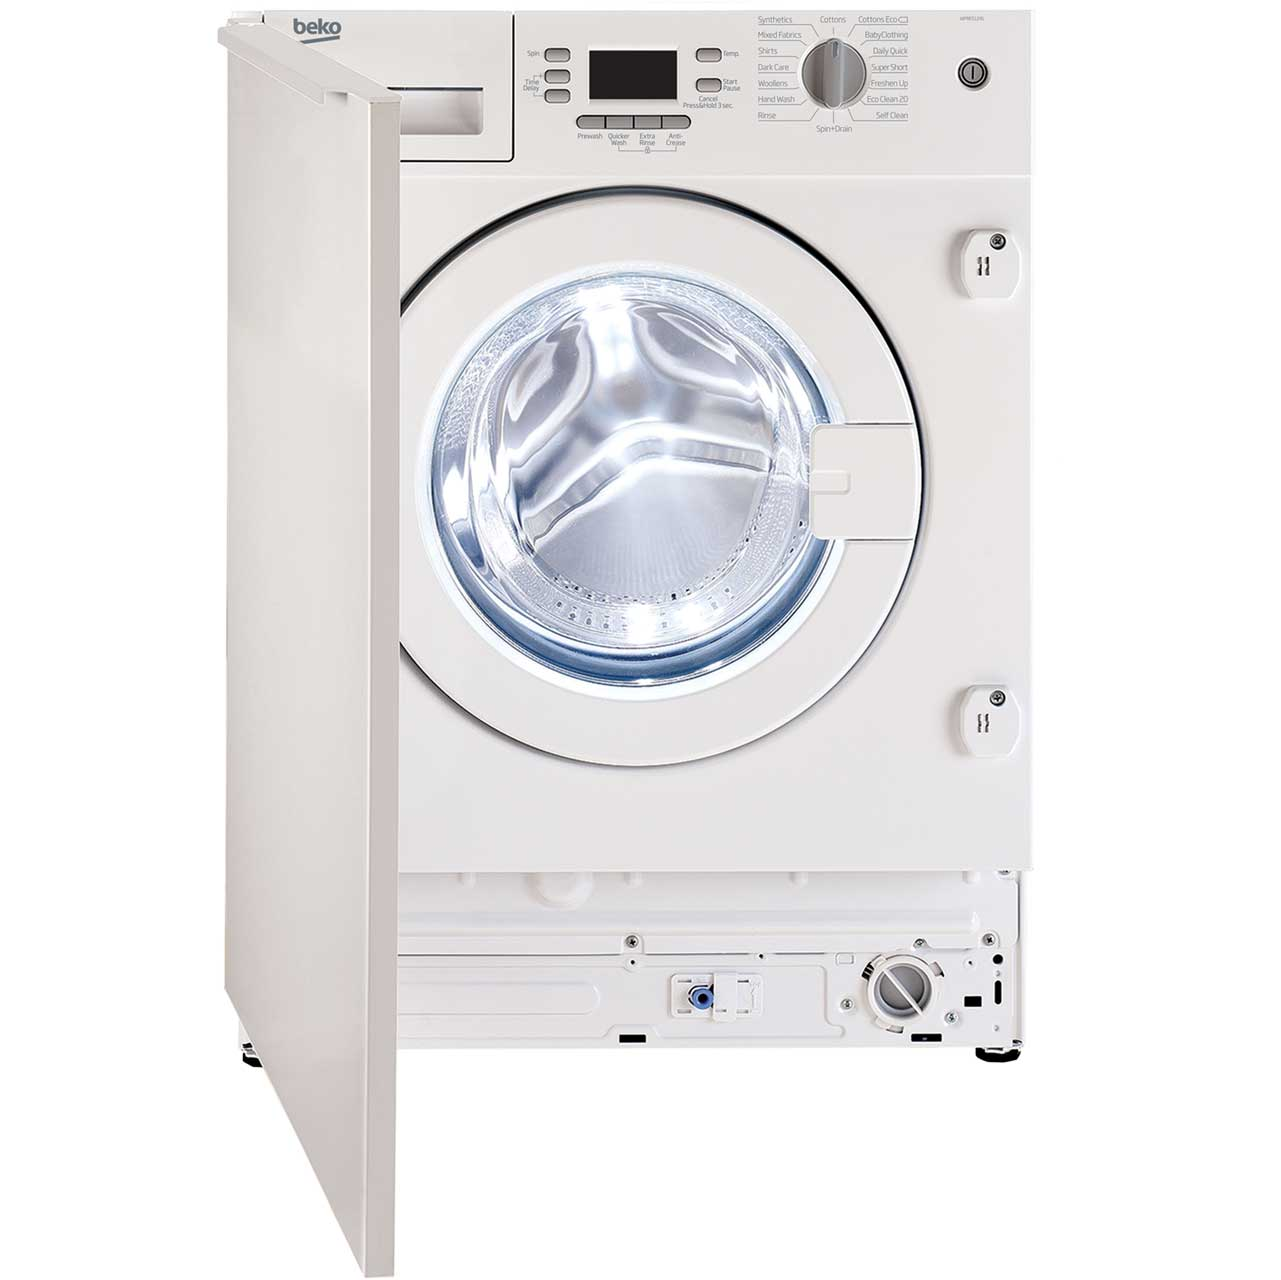 Beko WMI651241 Integrated Washing Machine in White